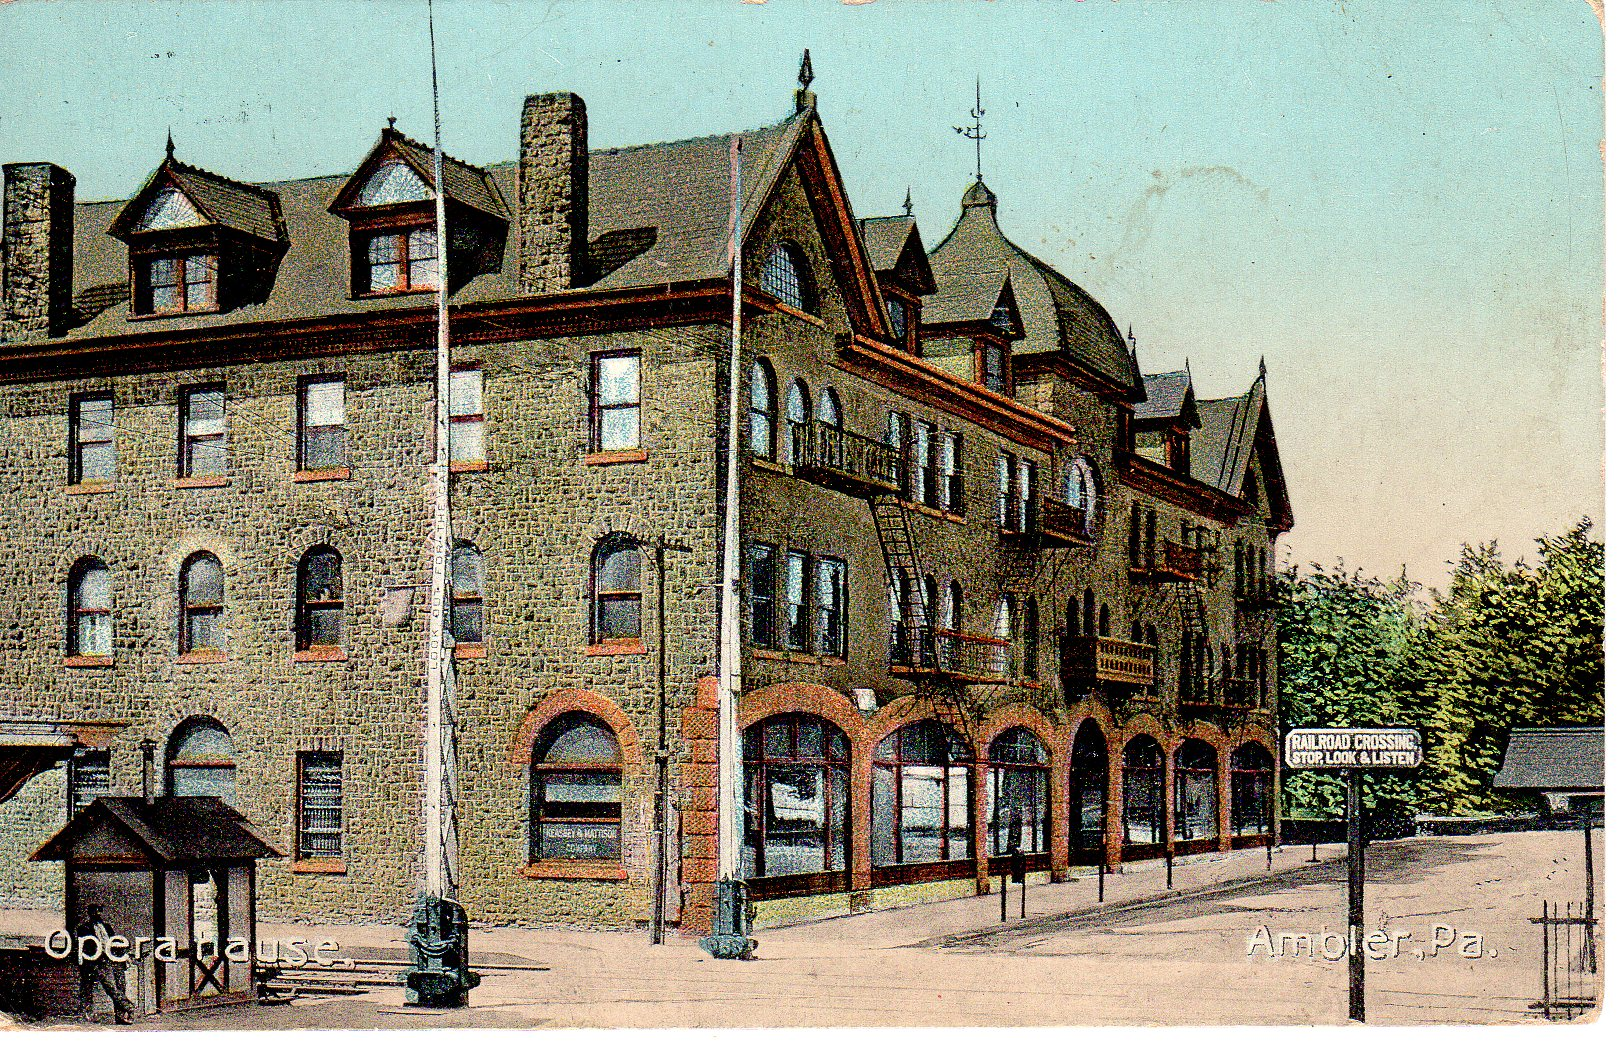 Post Card Collection (E Simon)_2682_52_Opera House, Ambler, Pa_5 Jul 1913